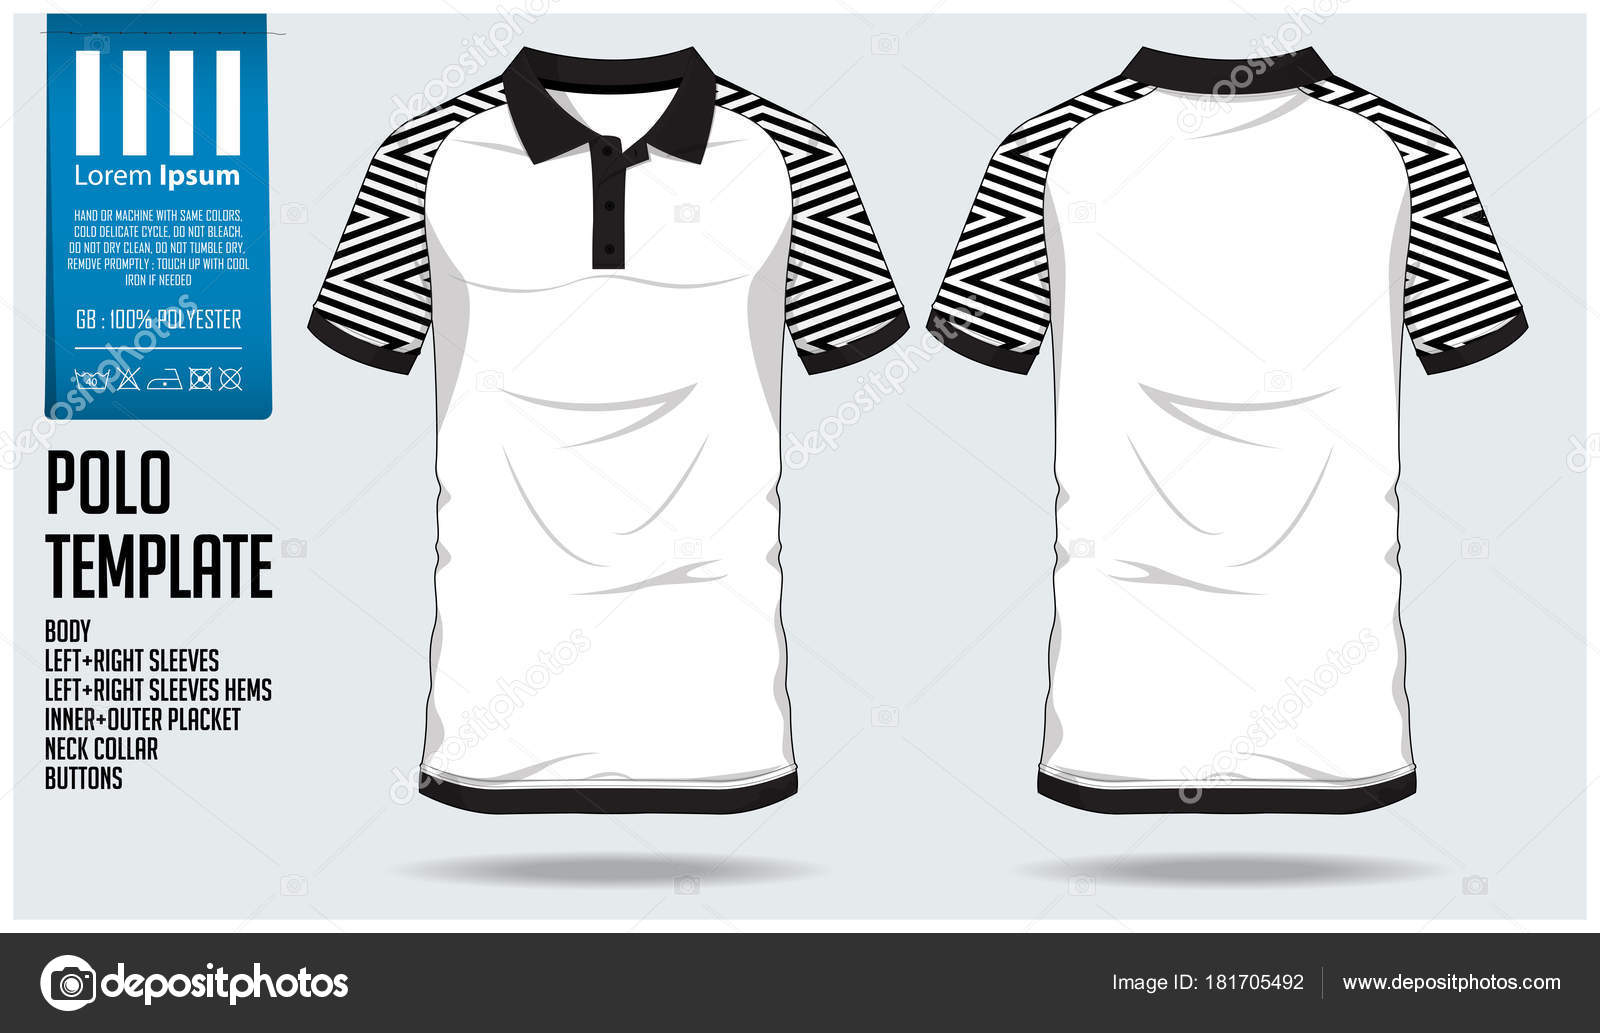 polo t shirt sport design template for soccer jersey football kit